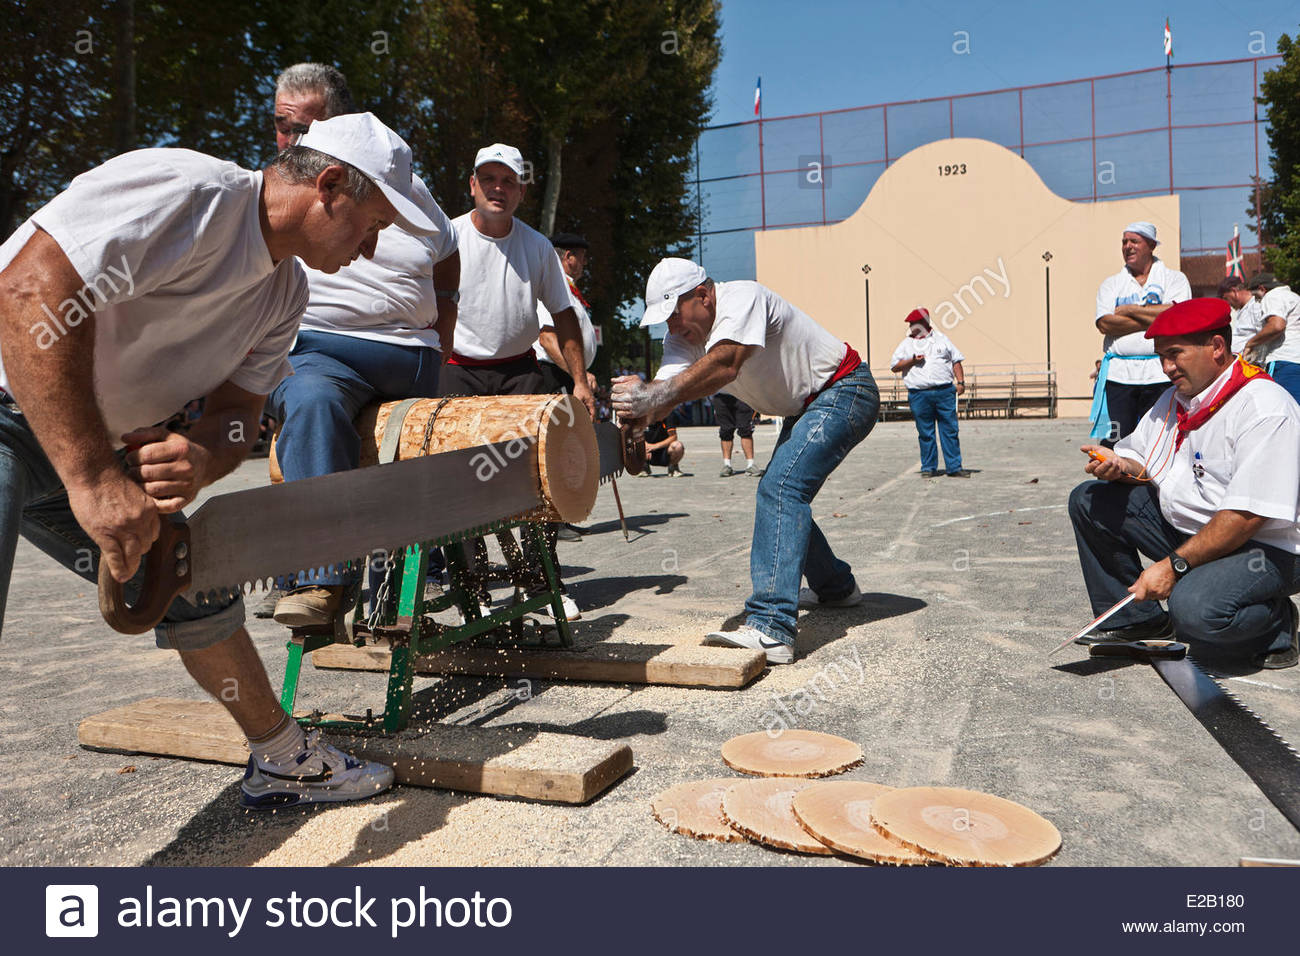 France, Pyrenees Atlantiques, Basque Country, Saint Palais, strenght Basque festival, lumberjacks, sawyers Stock Photo